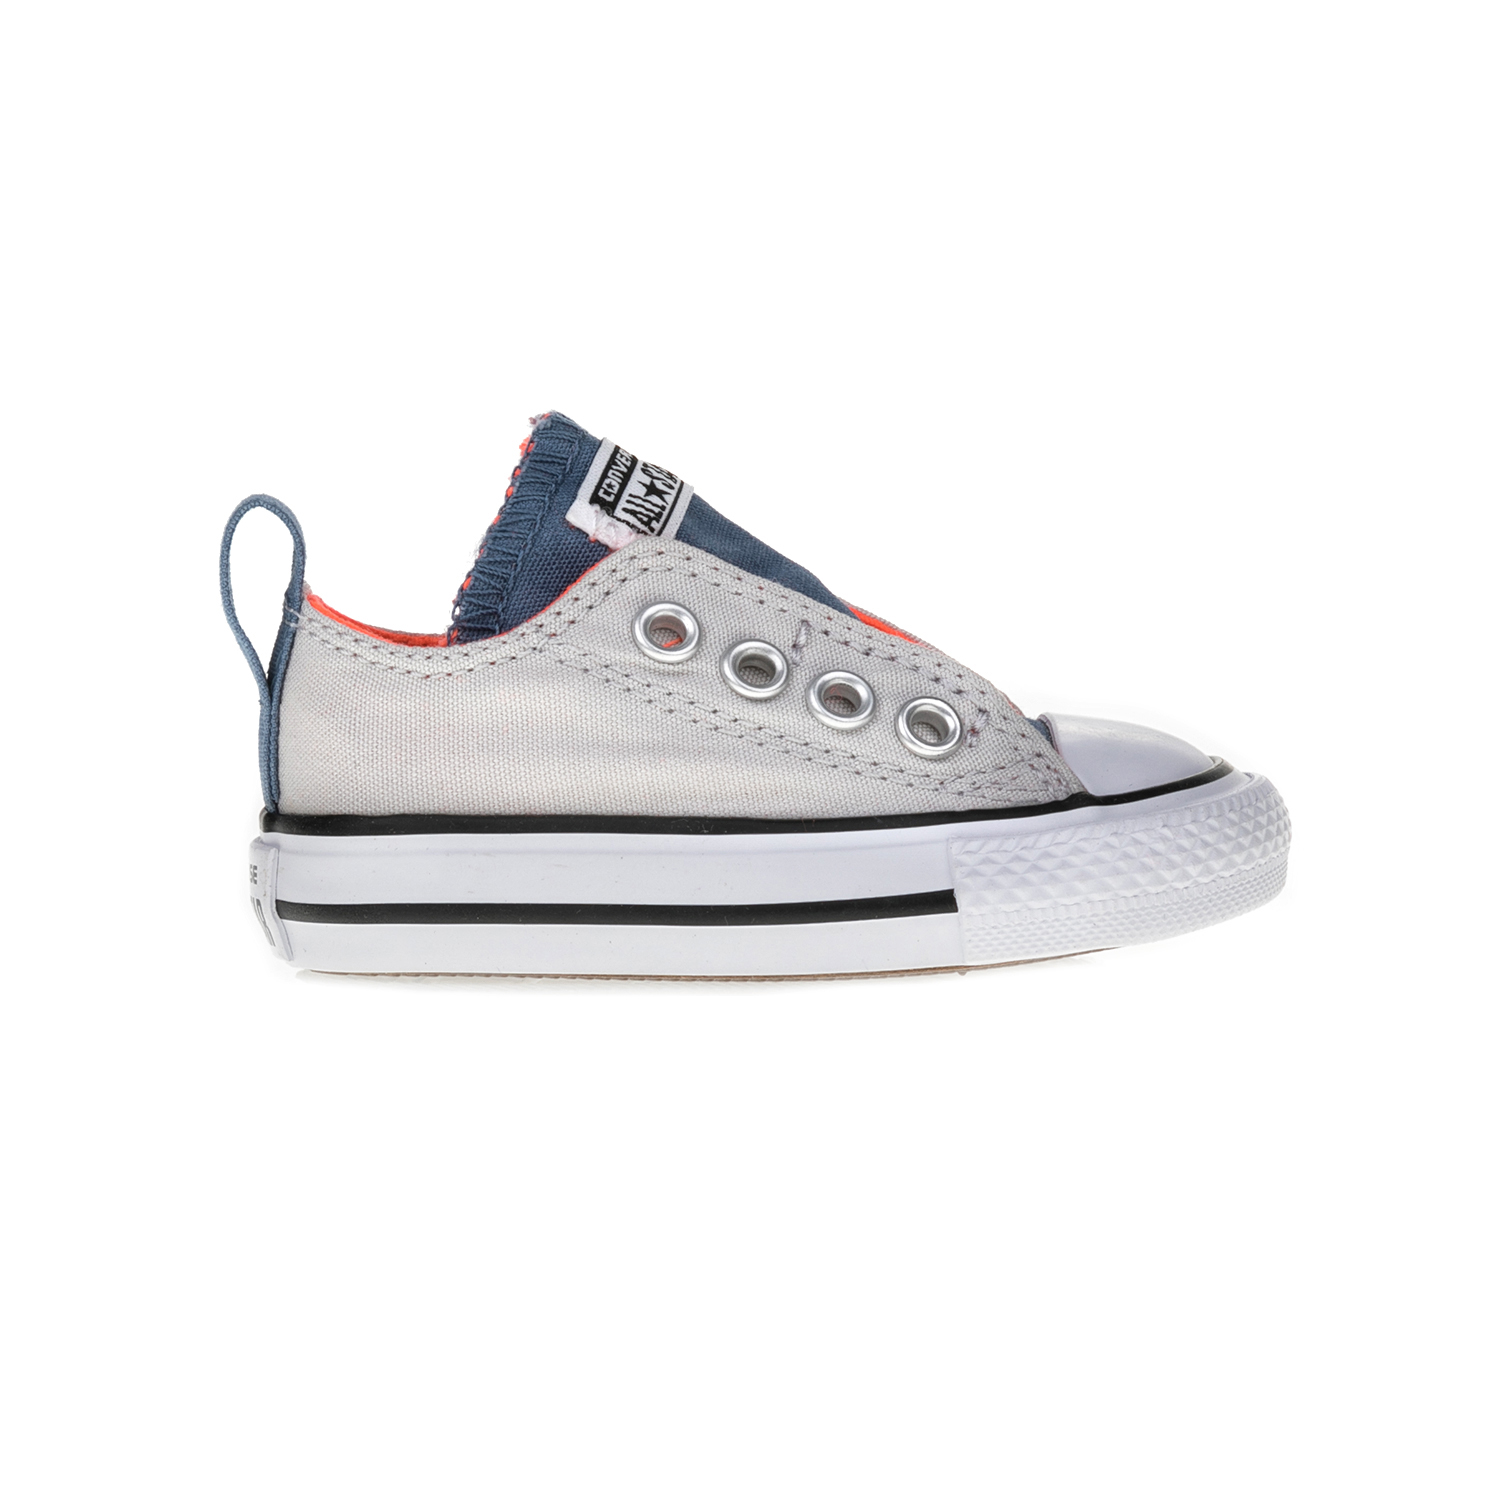 CONVERSE - Βρεφικά παπούτσια Chuck Taylor All Star Simple S γκρι-μπλε παιδικά baby παπούτσια sneakers